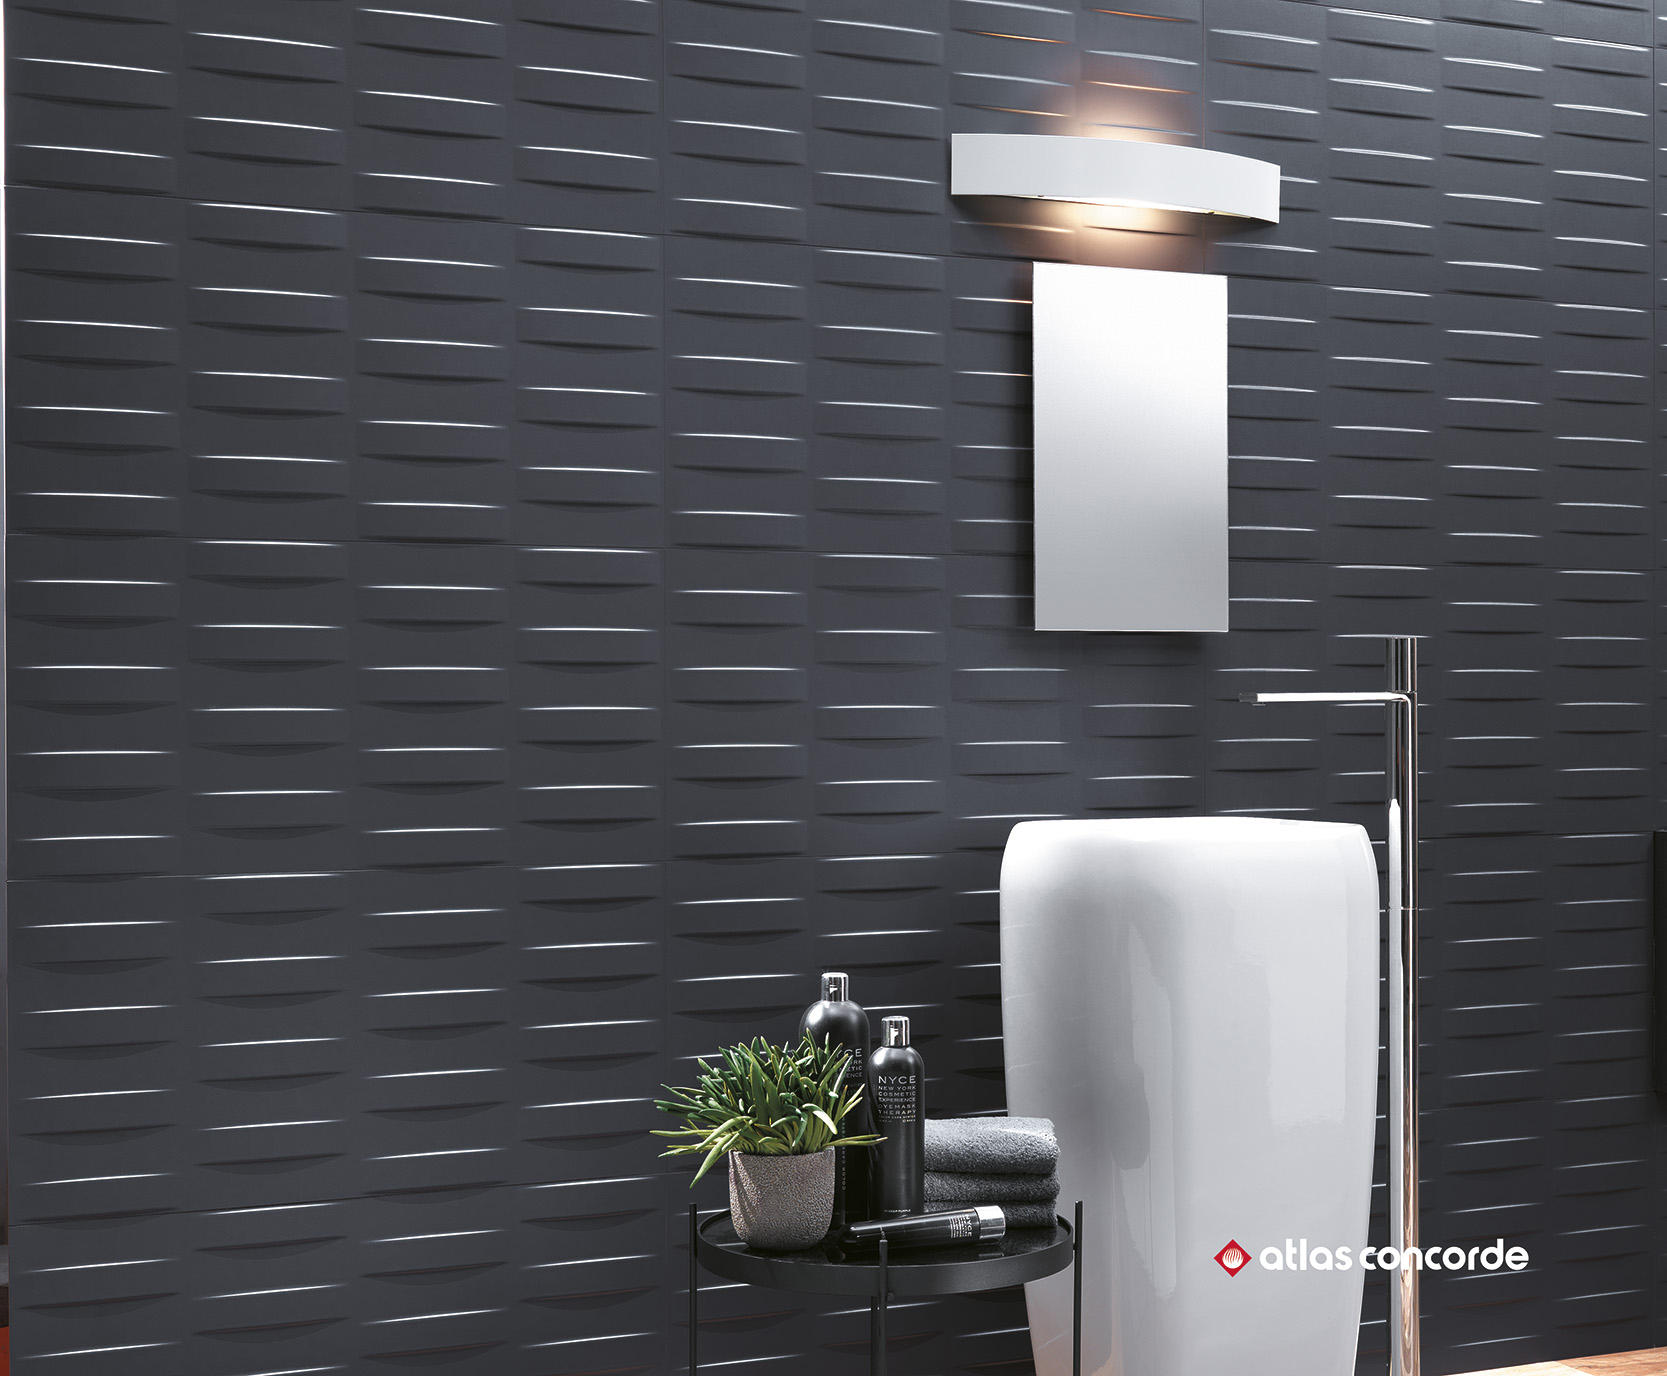 3d wall diamond white wall tiles by atlas concorde - Fliesen rudroff ...